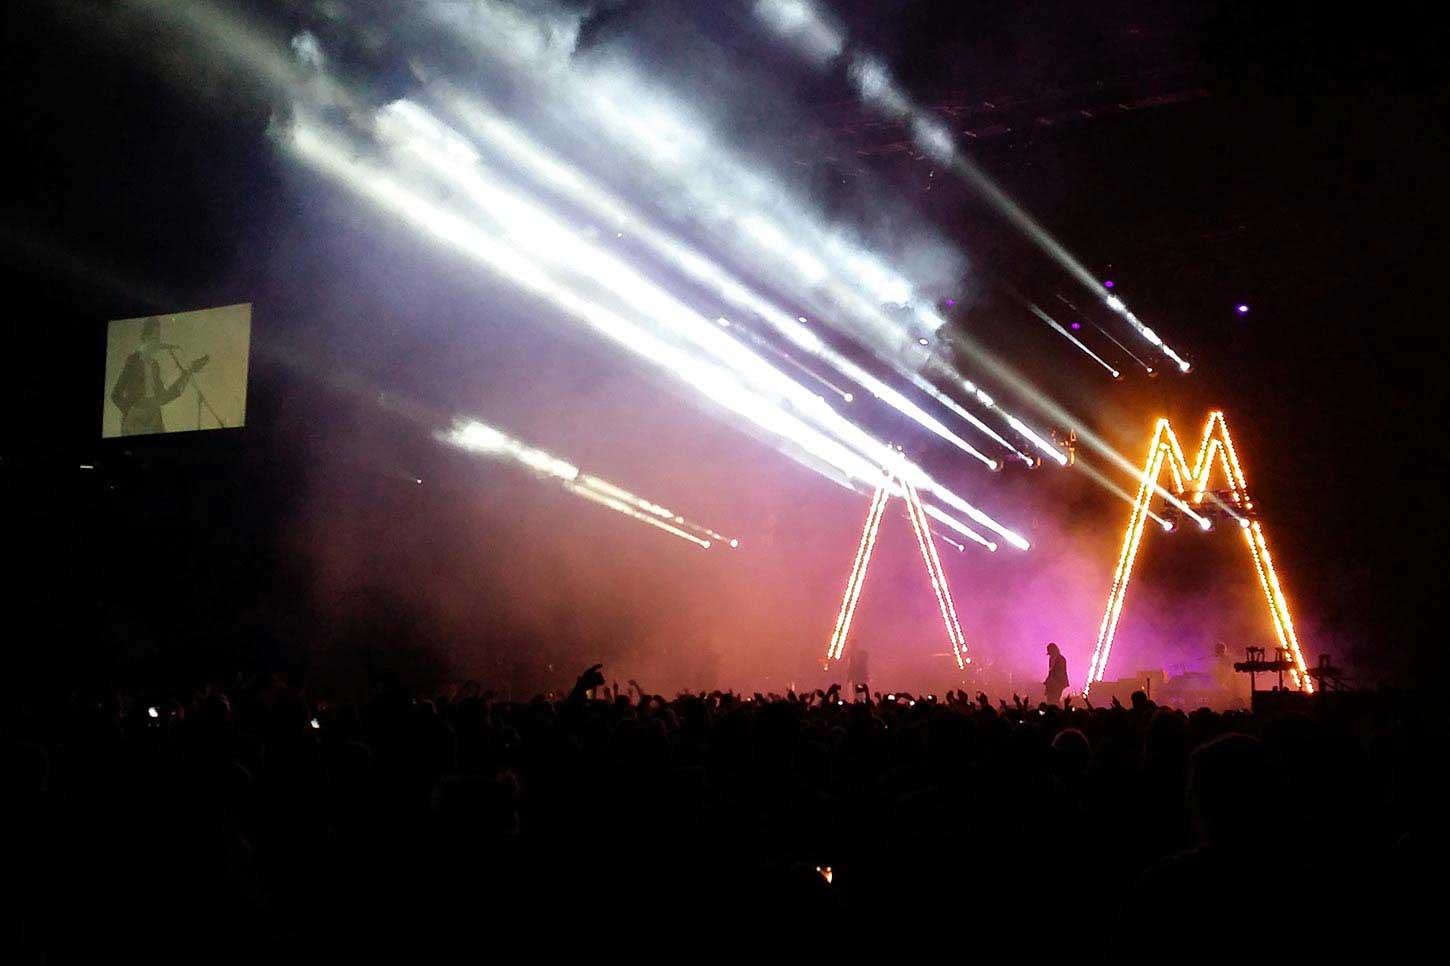 Arctic Monkeys 2014 Tour Staging & lighting by Austage Events